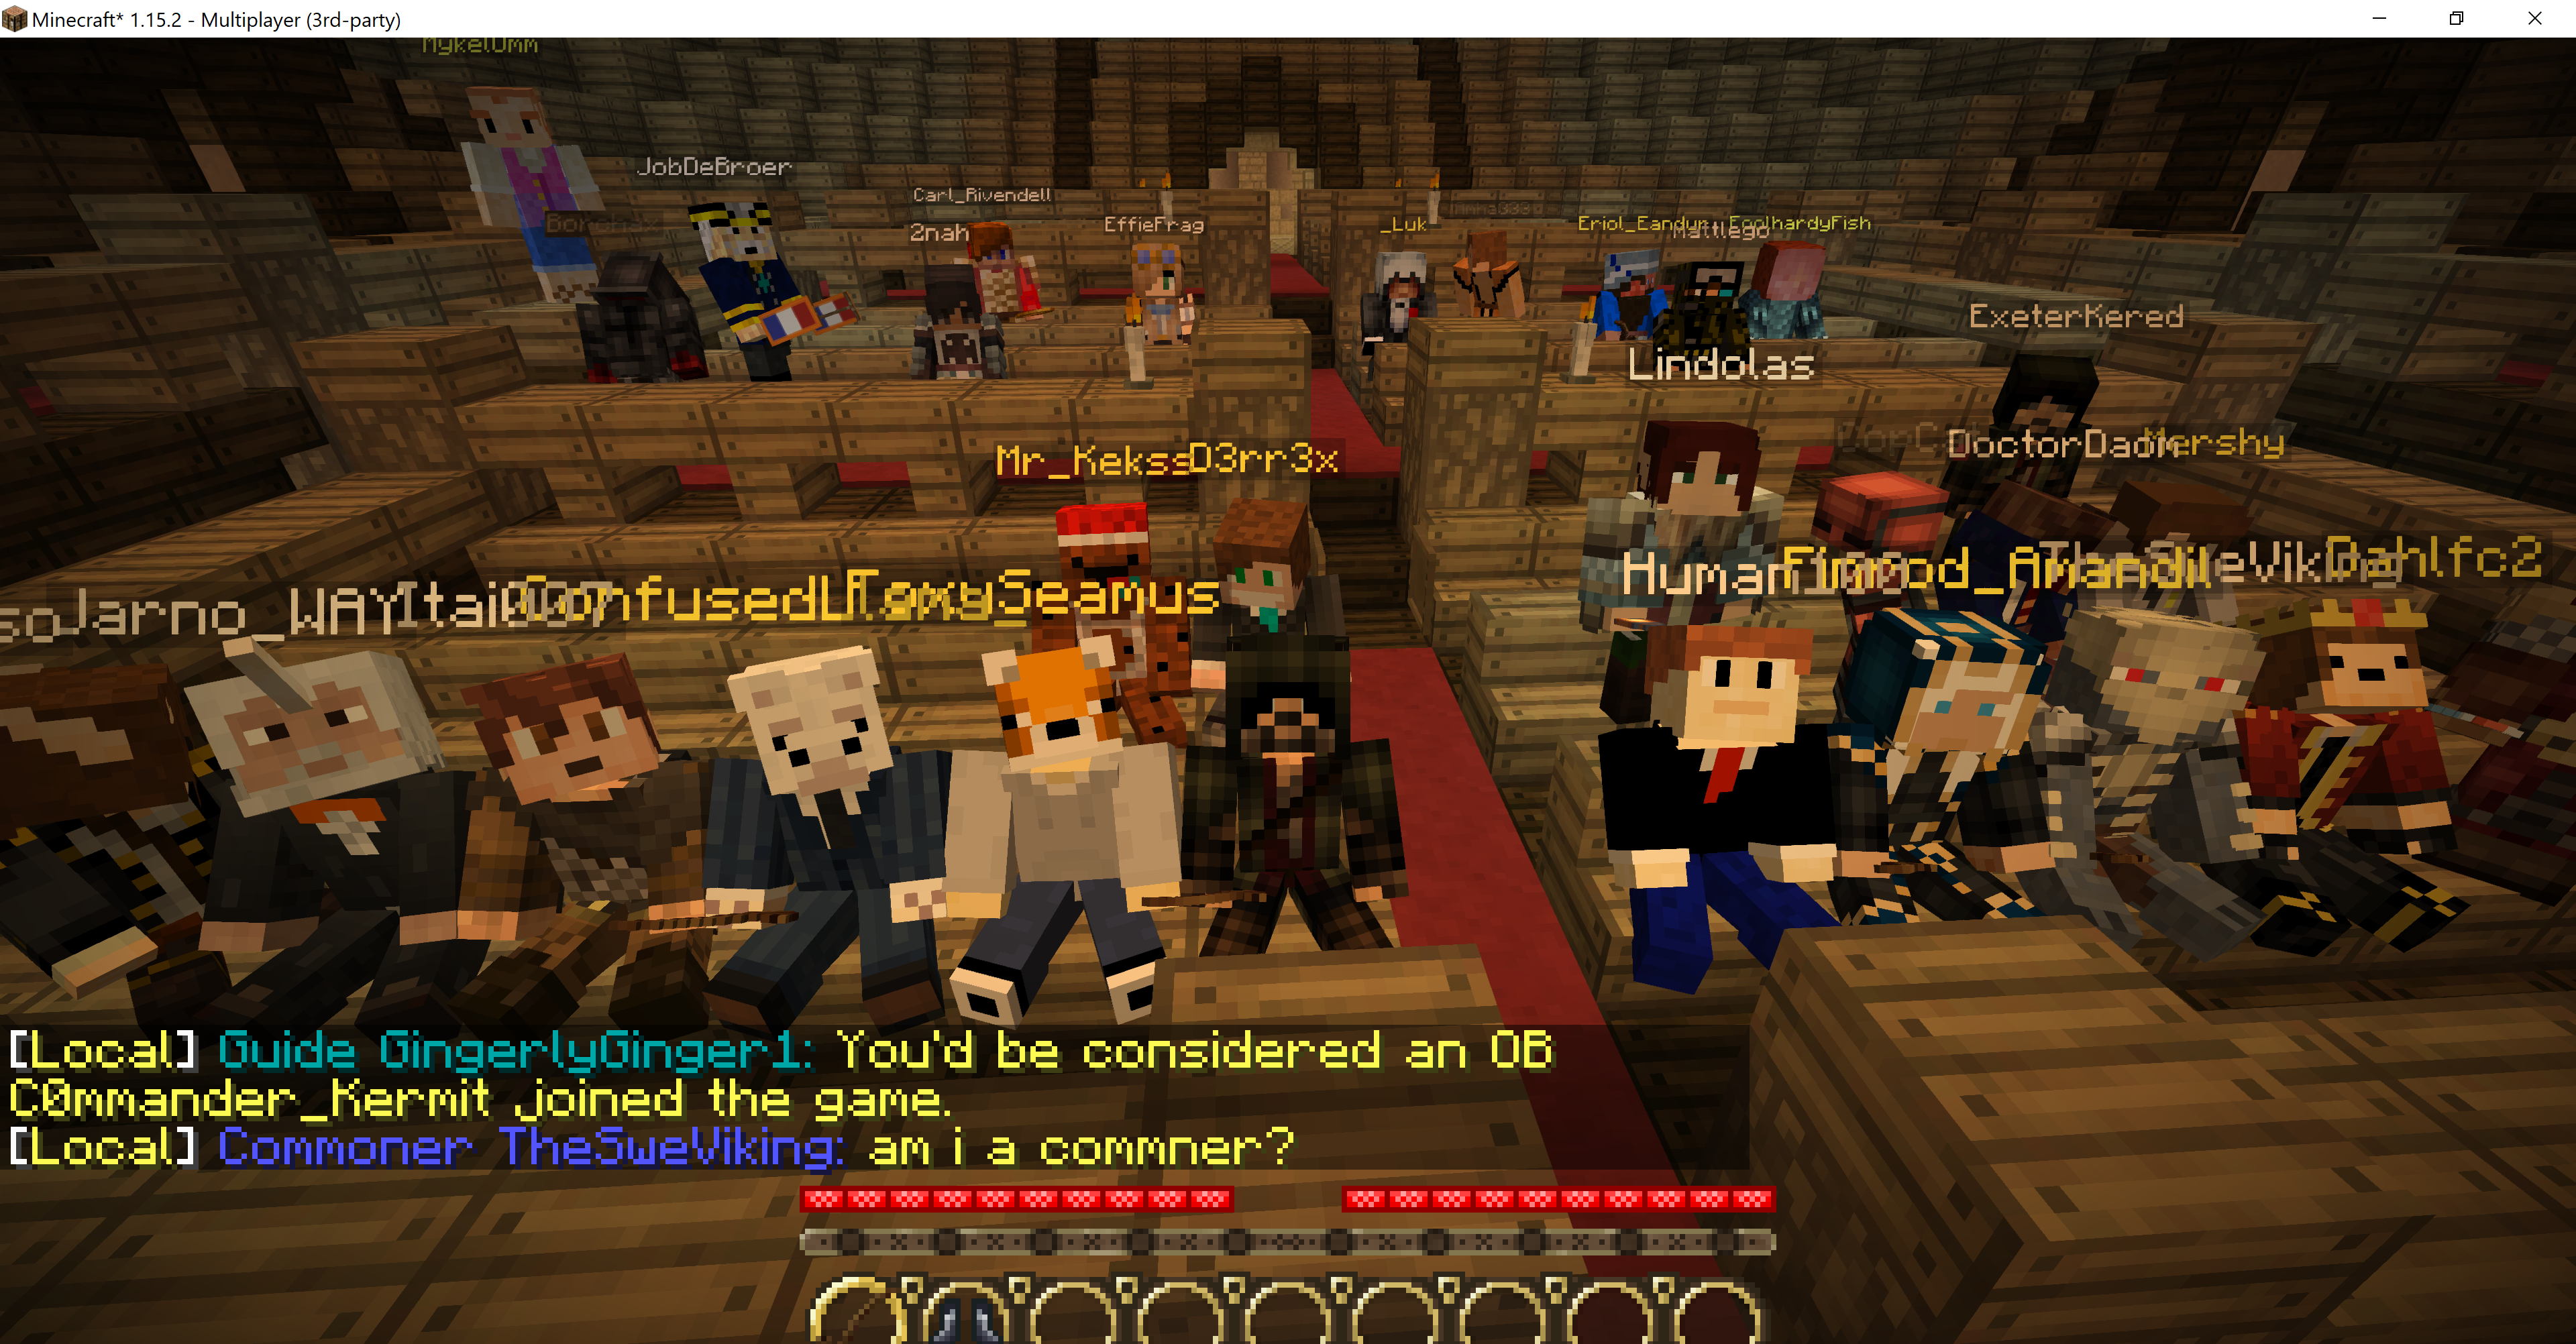 Minecraft_ 1.15.2 - Multiplayer (3rd-party) 7_31_2020 3_05_14 PM.png